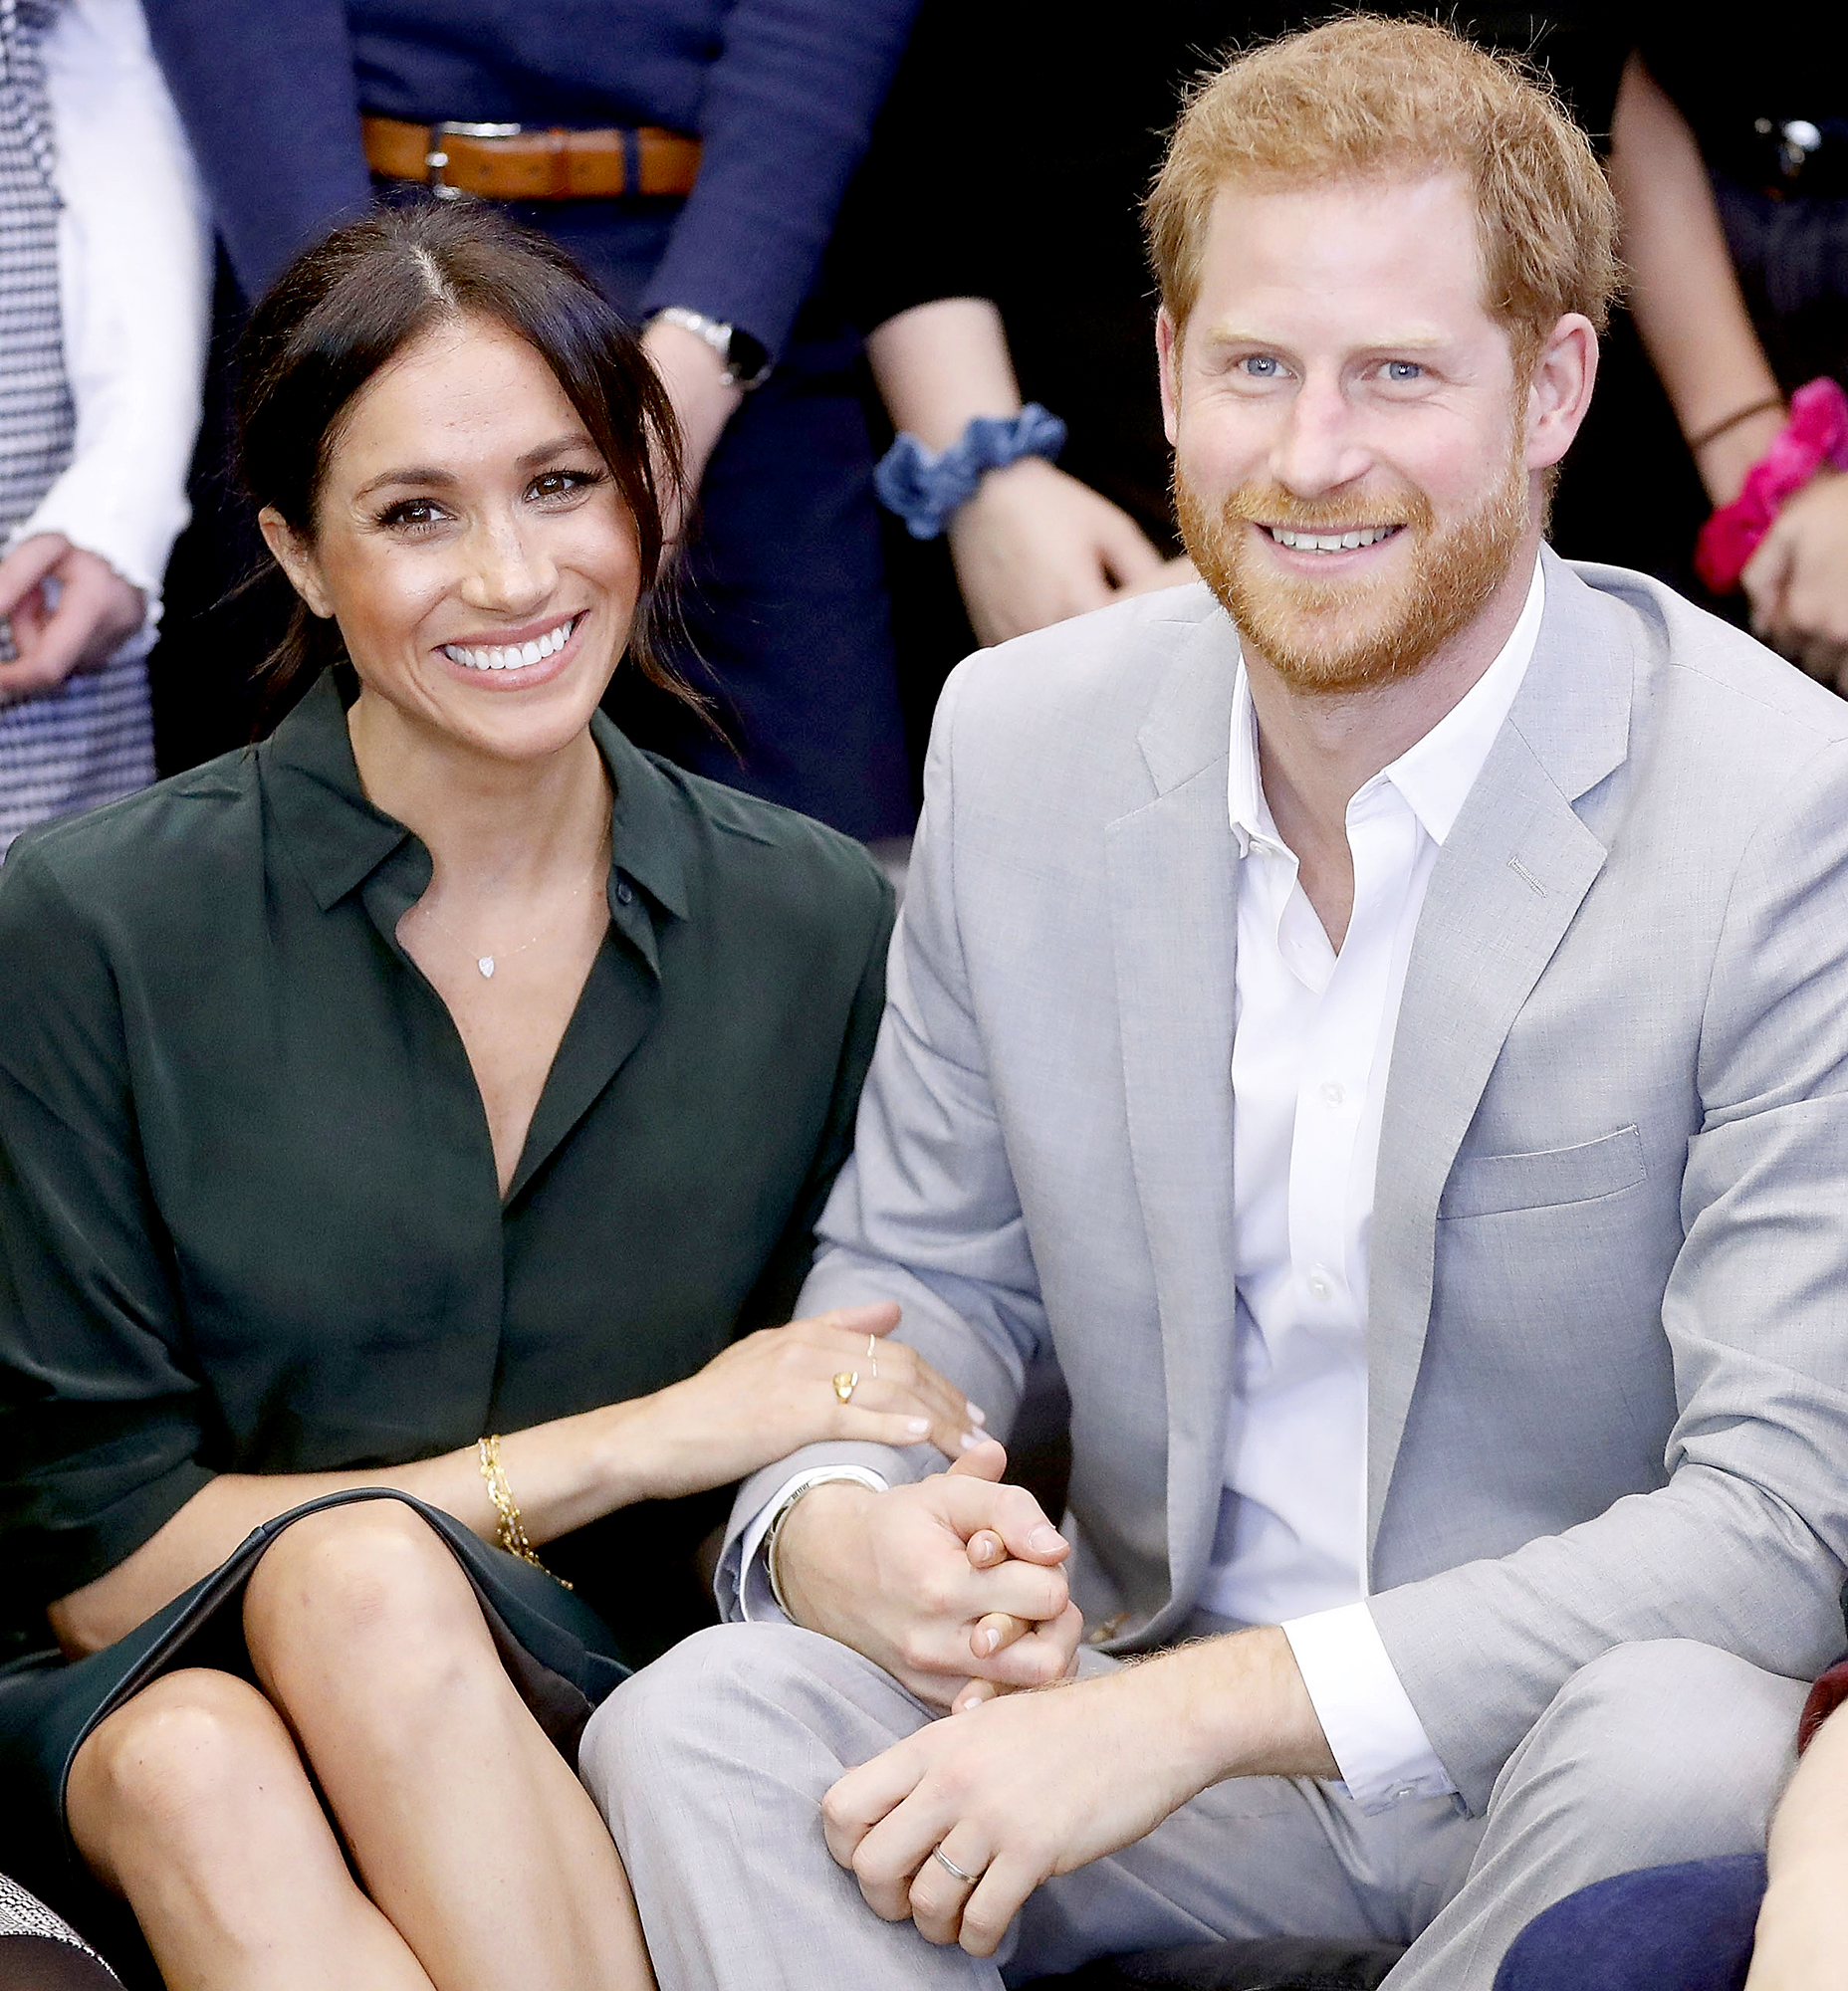 Prince-Harry-and-Duchess-Meghan's-Country-Retreat - Picture perfect — just like them! Prince Harry and Duchess Meghan's country home in South Central England is just as extravagant as one would expect.